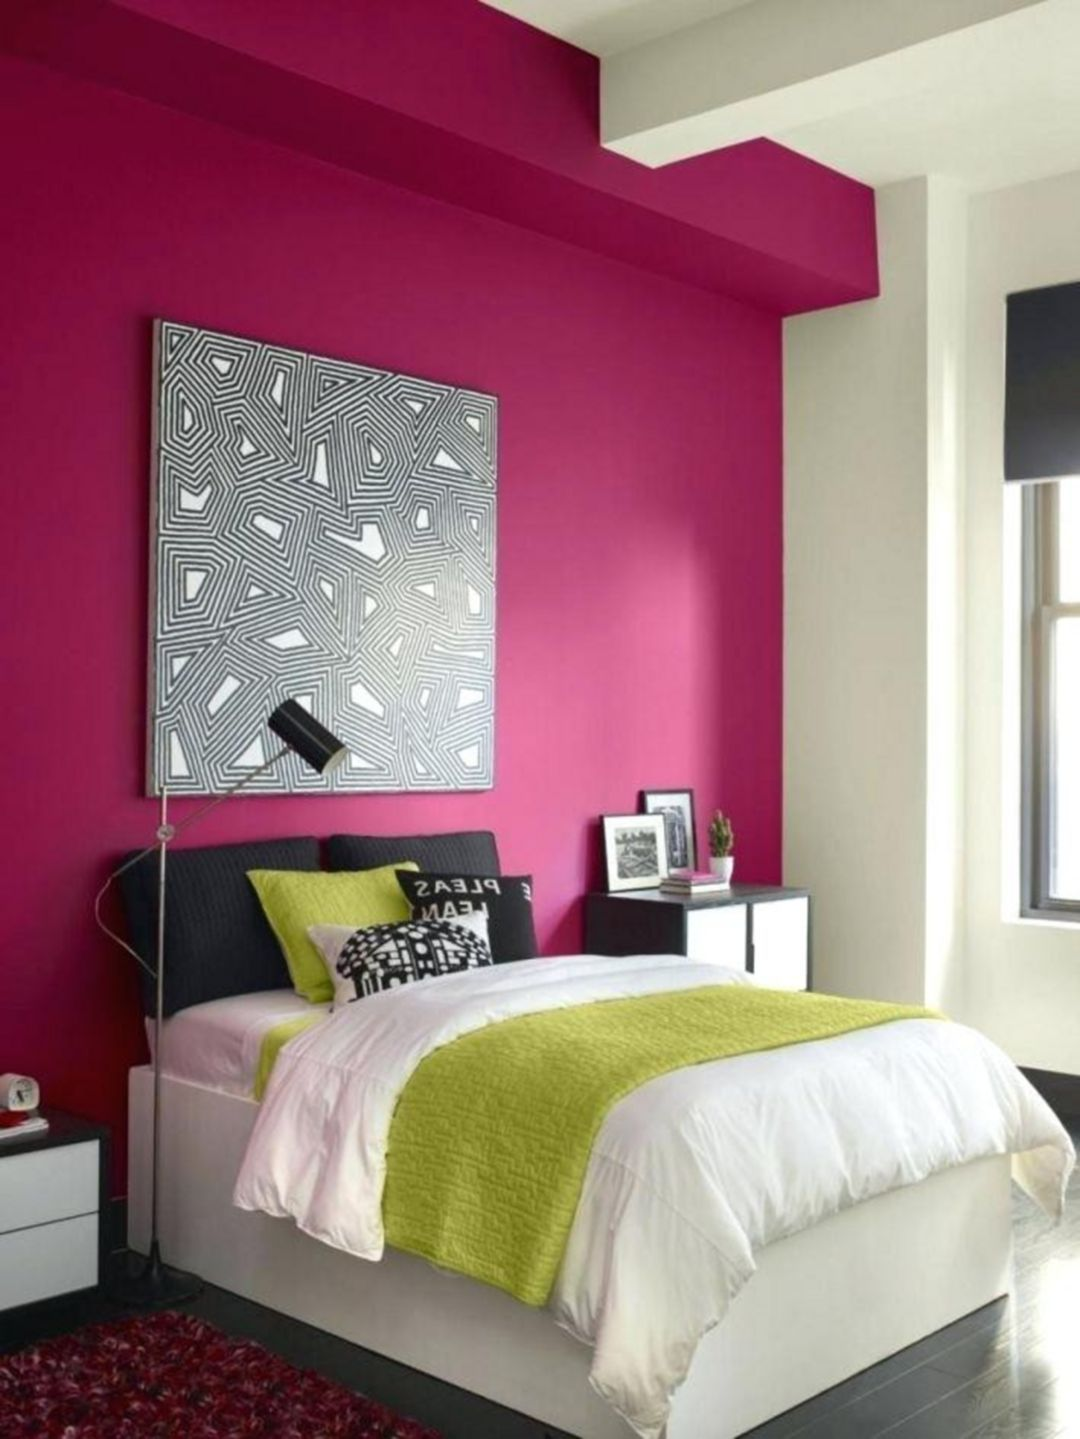 25 Relaxing Master Bedrooms With Lovely Wall Paint Color Decor Ideas Teracee Wall Color Combination Room Color Combination Bedroom Wall Colors